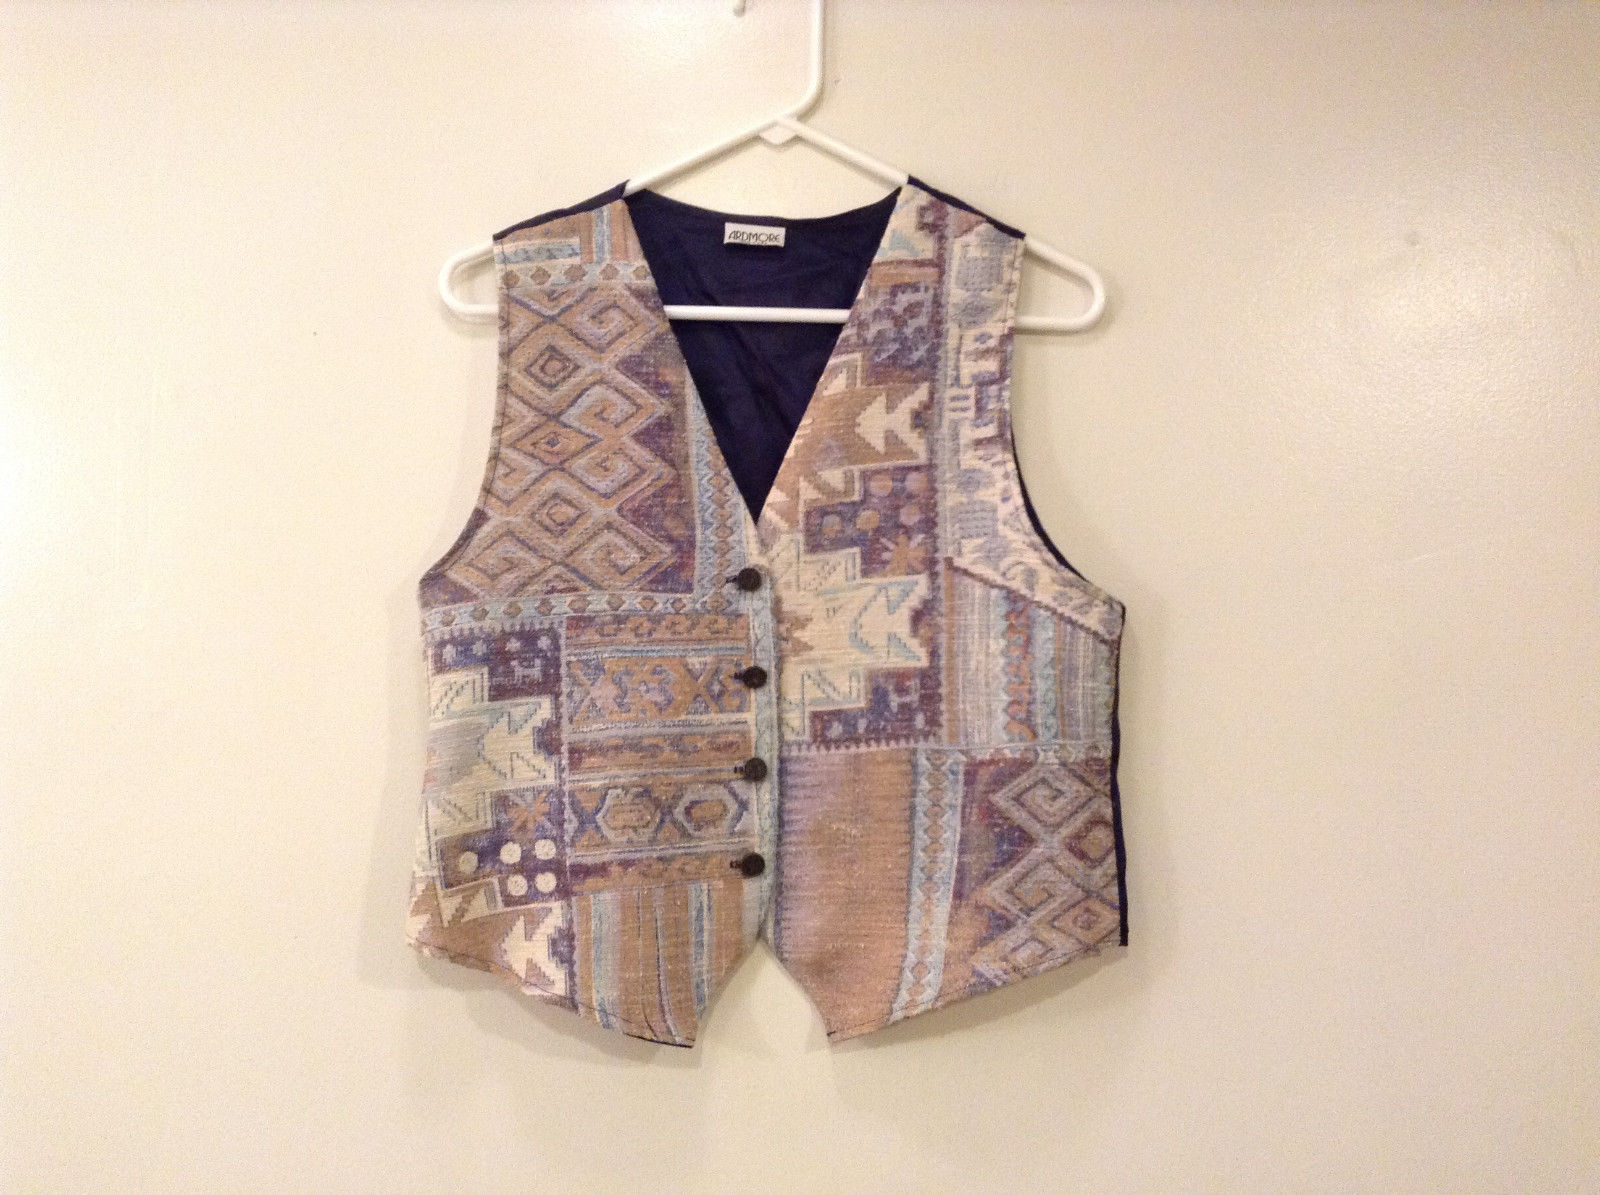 Womens Ardmore Geometric Print Fabric Vest, size NO tag see measurements